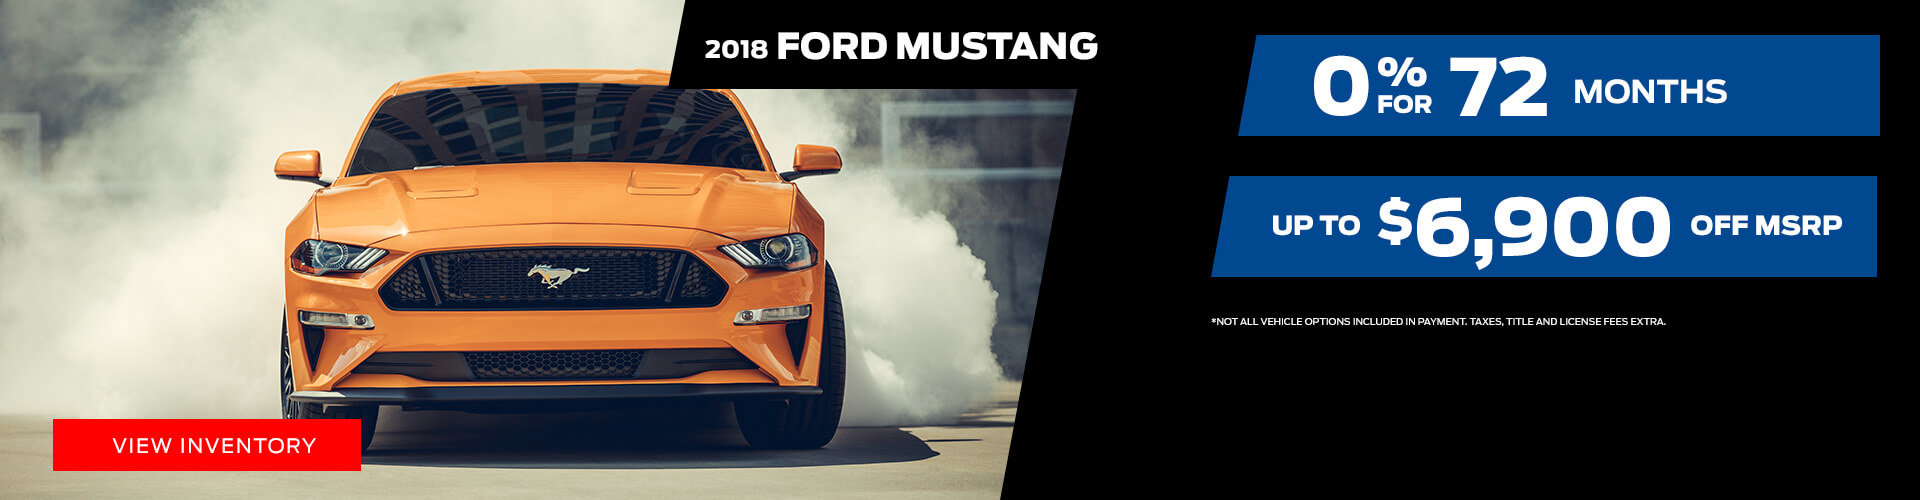 Special offer on 2018 Ford Mustang 2018 Ford Mustang Special Offer